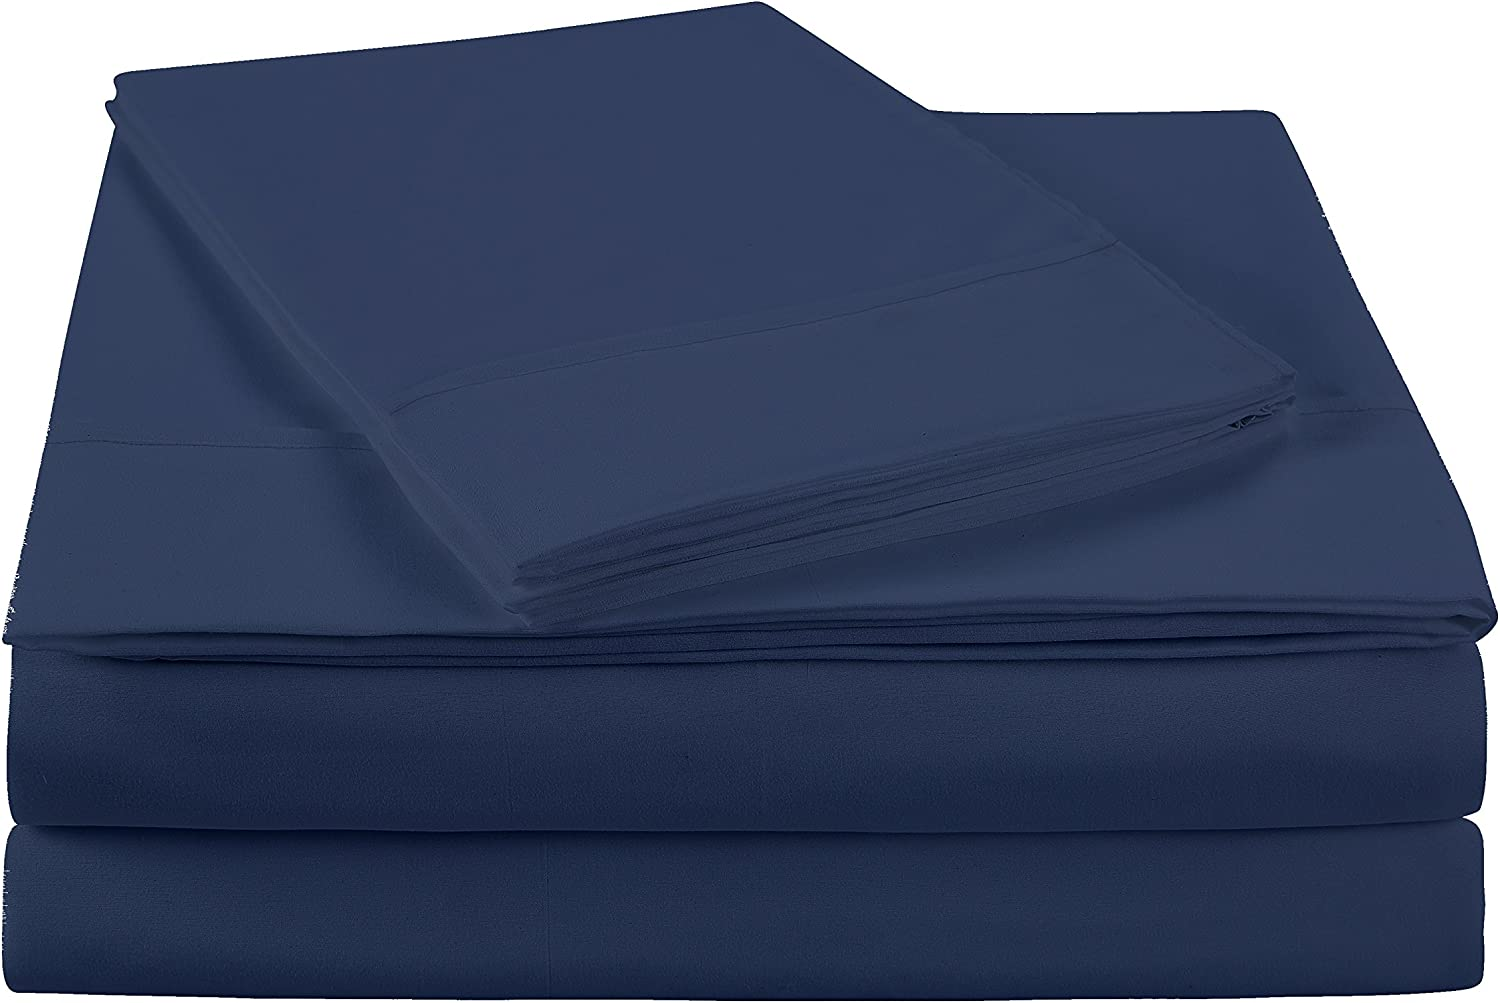 NC Home Fashions Ultra Soft Brushed Microfiber Solid Bed Sheet Set- Cotton Feeling-Deep Pockets - Easy Fit - Breathable & Cooling - Wrinkle, Fade, Stain Resistant-Queen, Blue Indigo -4 Pieces